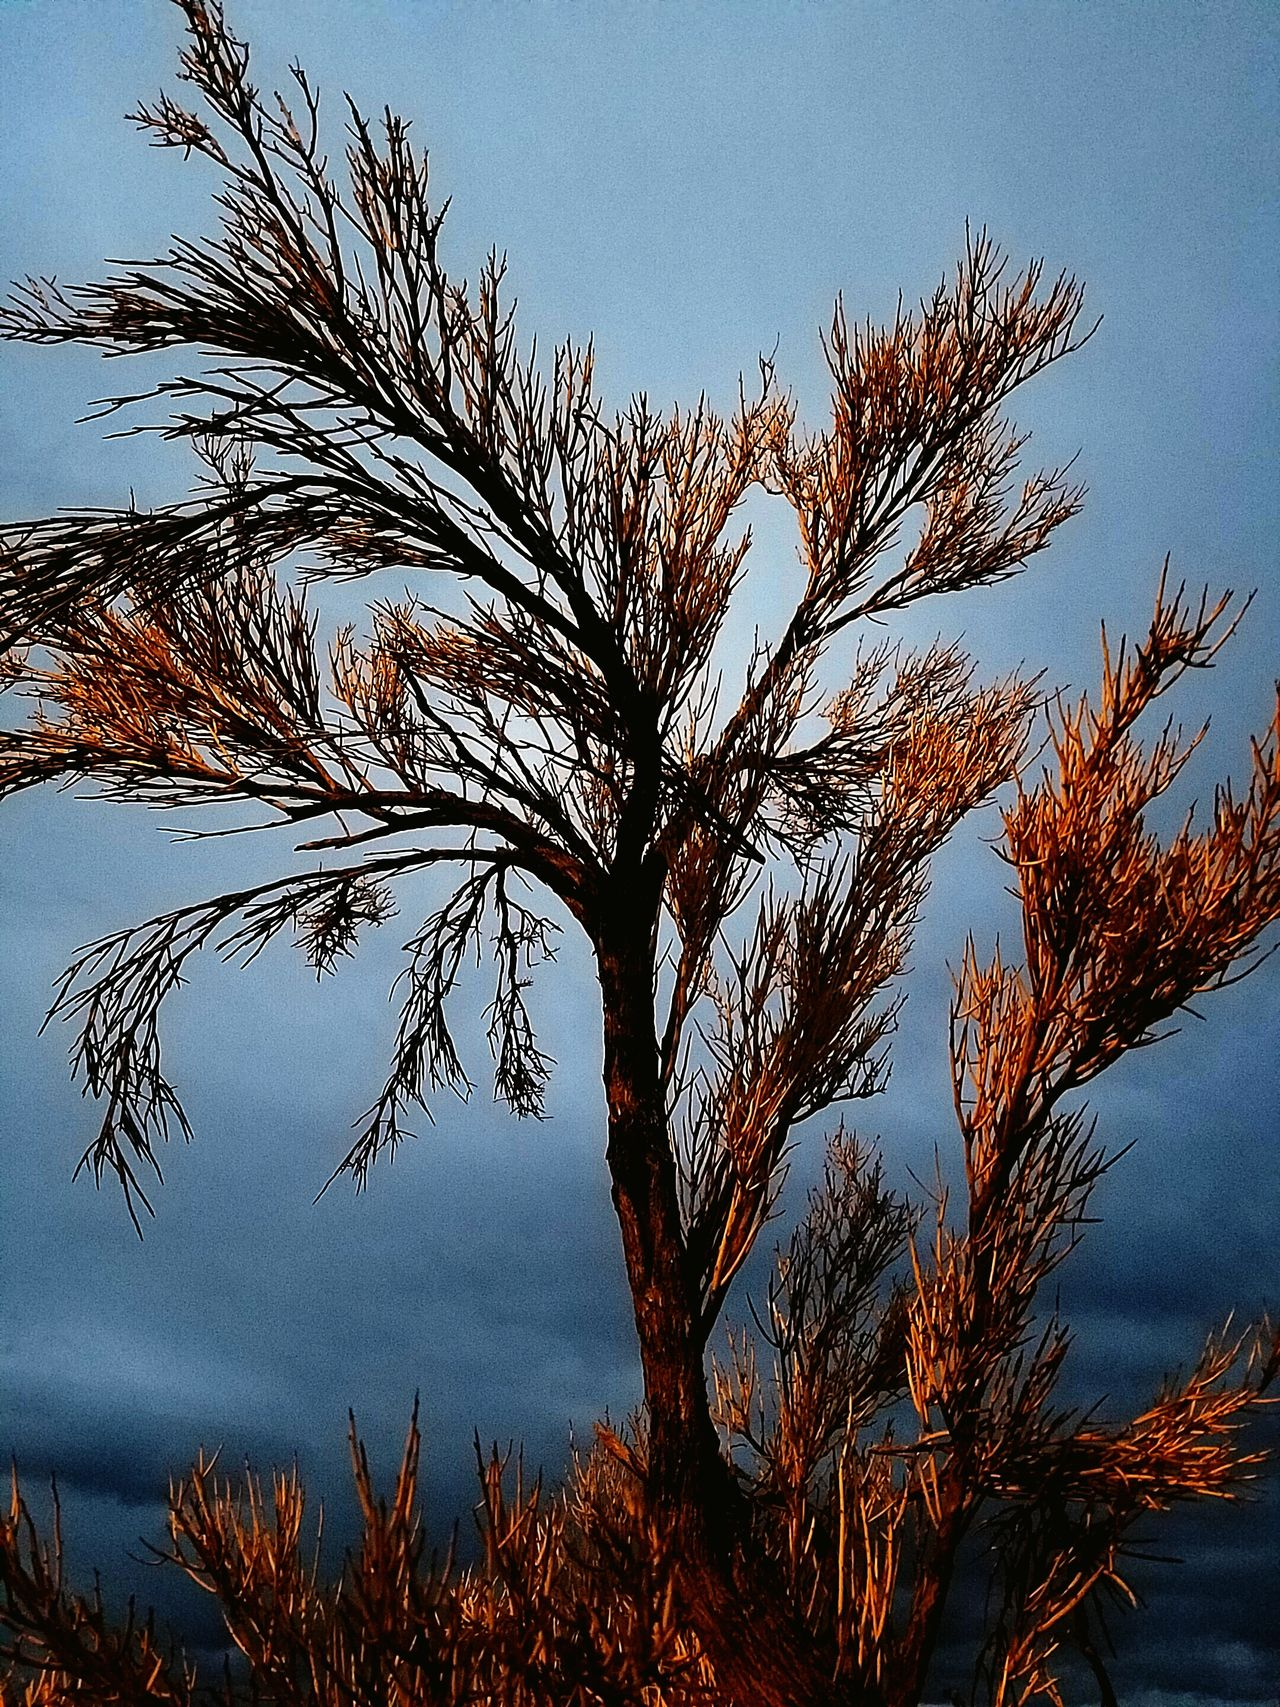 Stopped at a rest stop last night, saw interesting tree. Nature Tree Close-up Sky Dusk Beauty In Nature